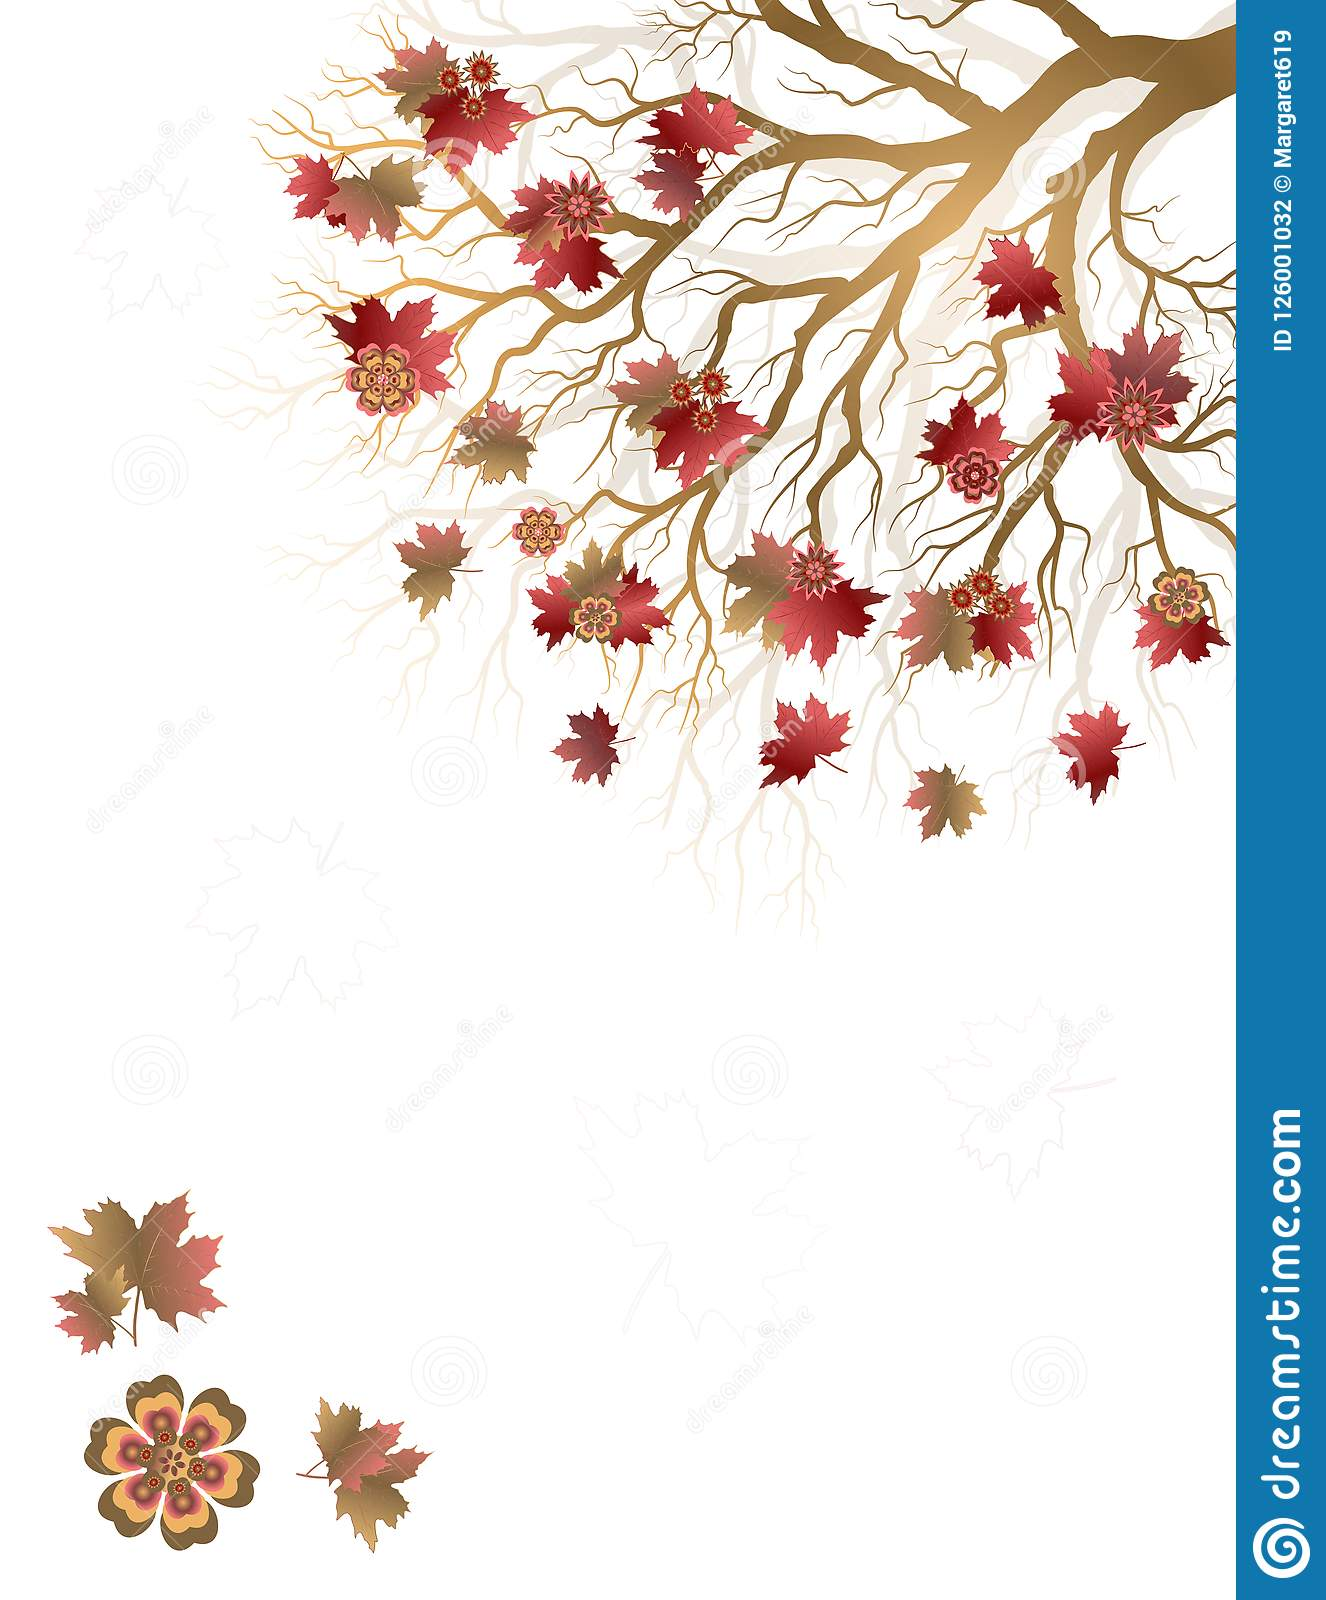 Fall background with colorful tree and falling leaves isolated on white background.